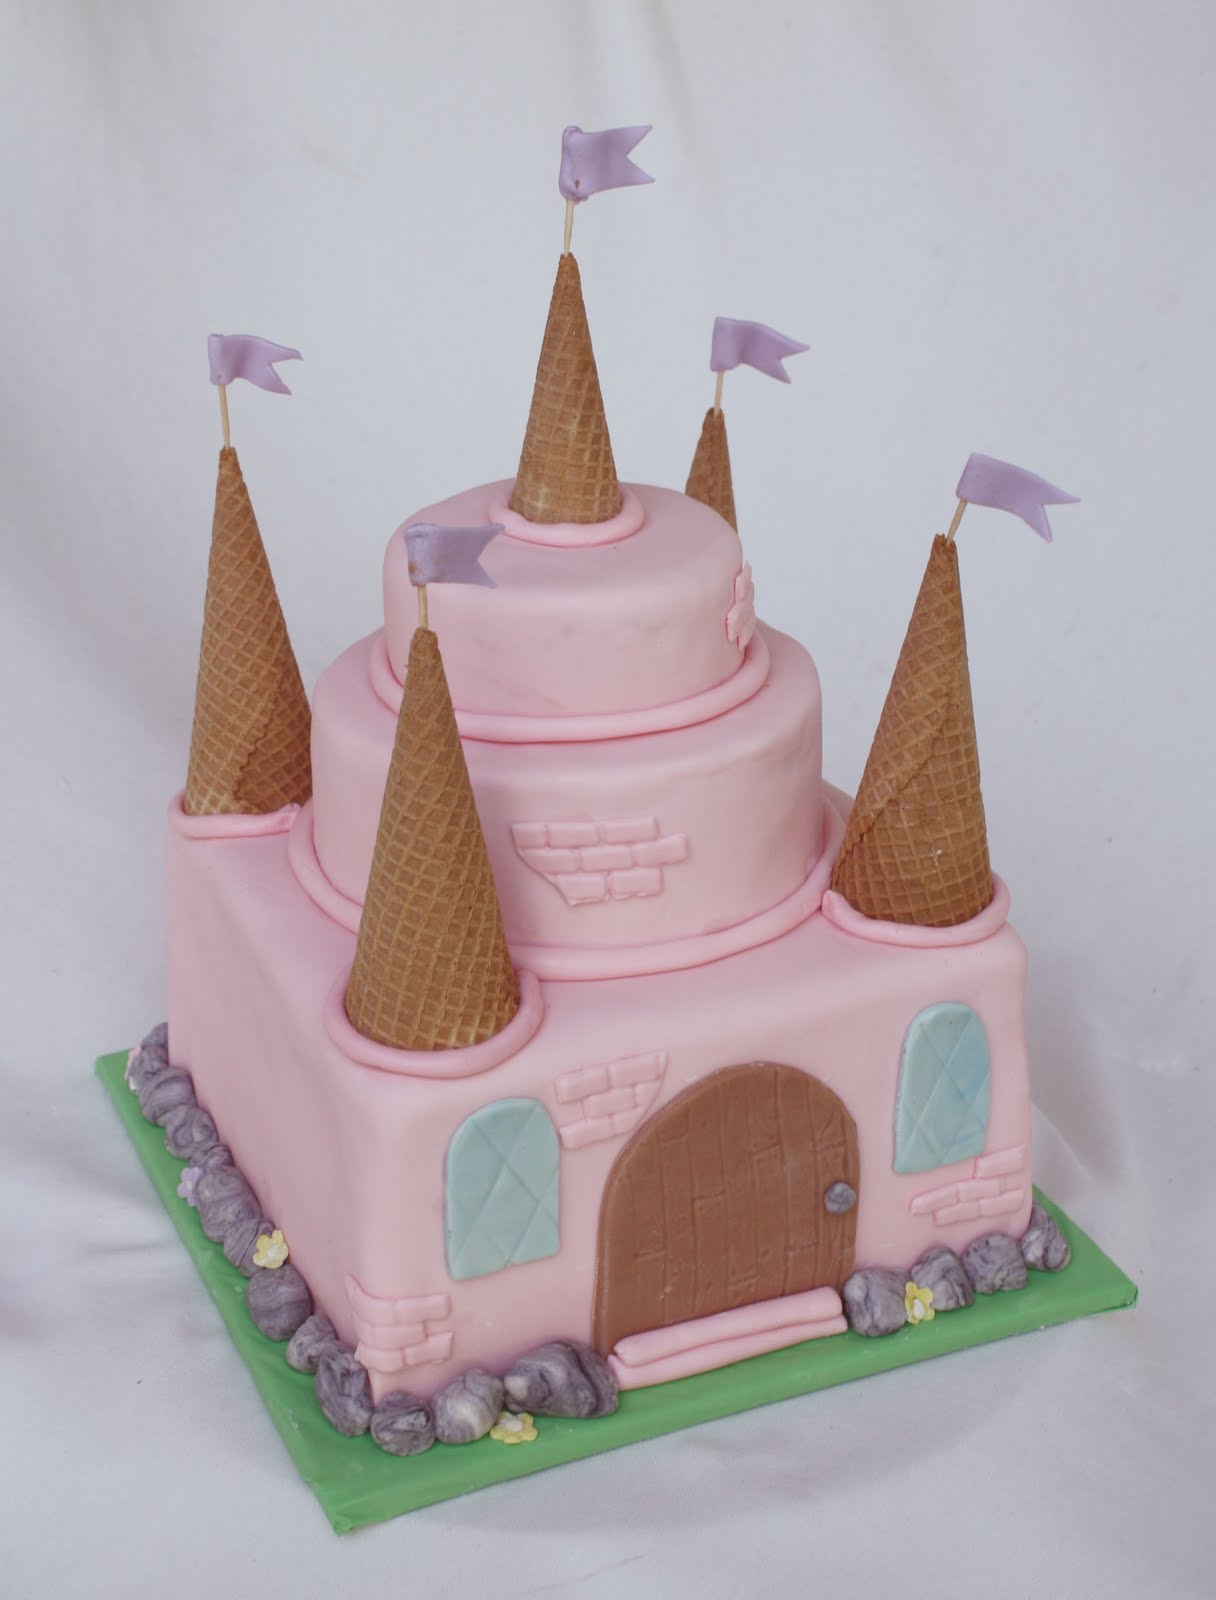 Pictures Of Princess Castle Cake : {An Easy} Pink Princess Castle Cake